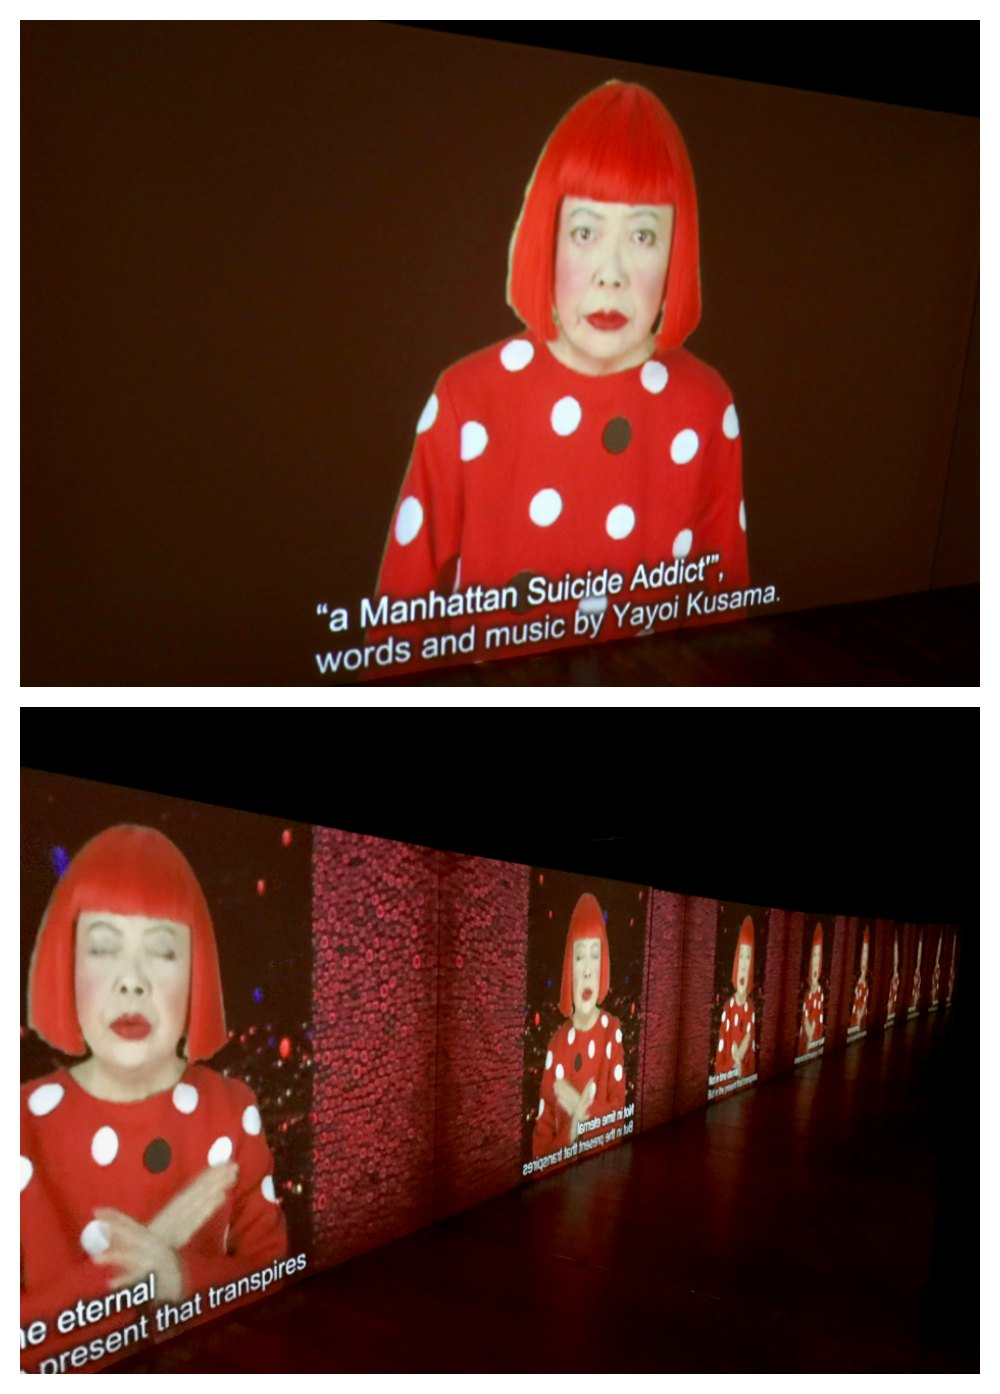 Stills from a video about and by Yayoi Kusama |curlytraveller.com